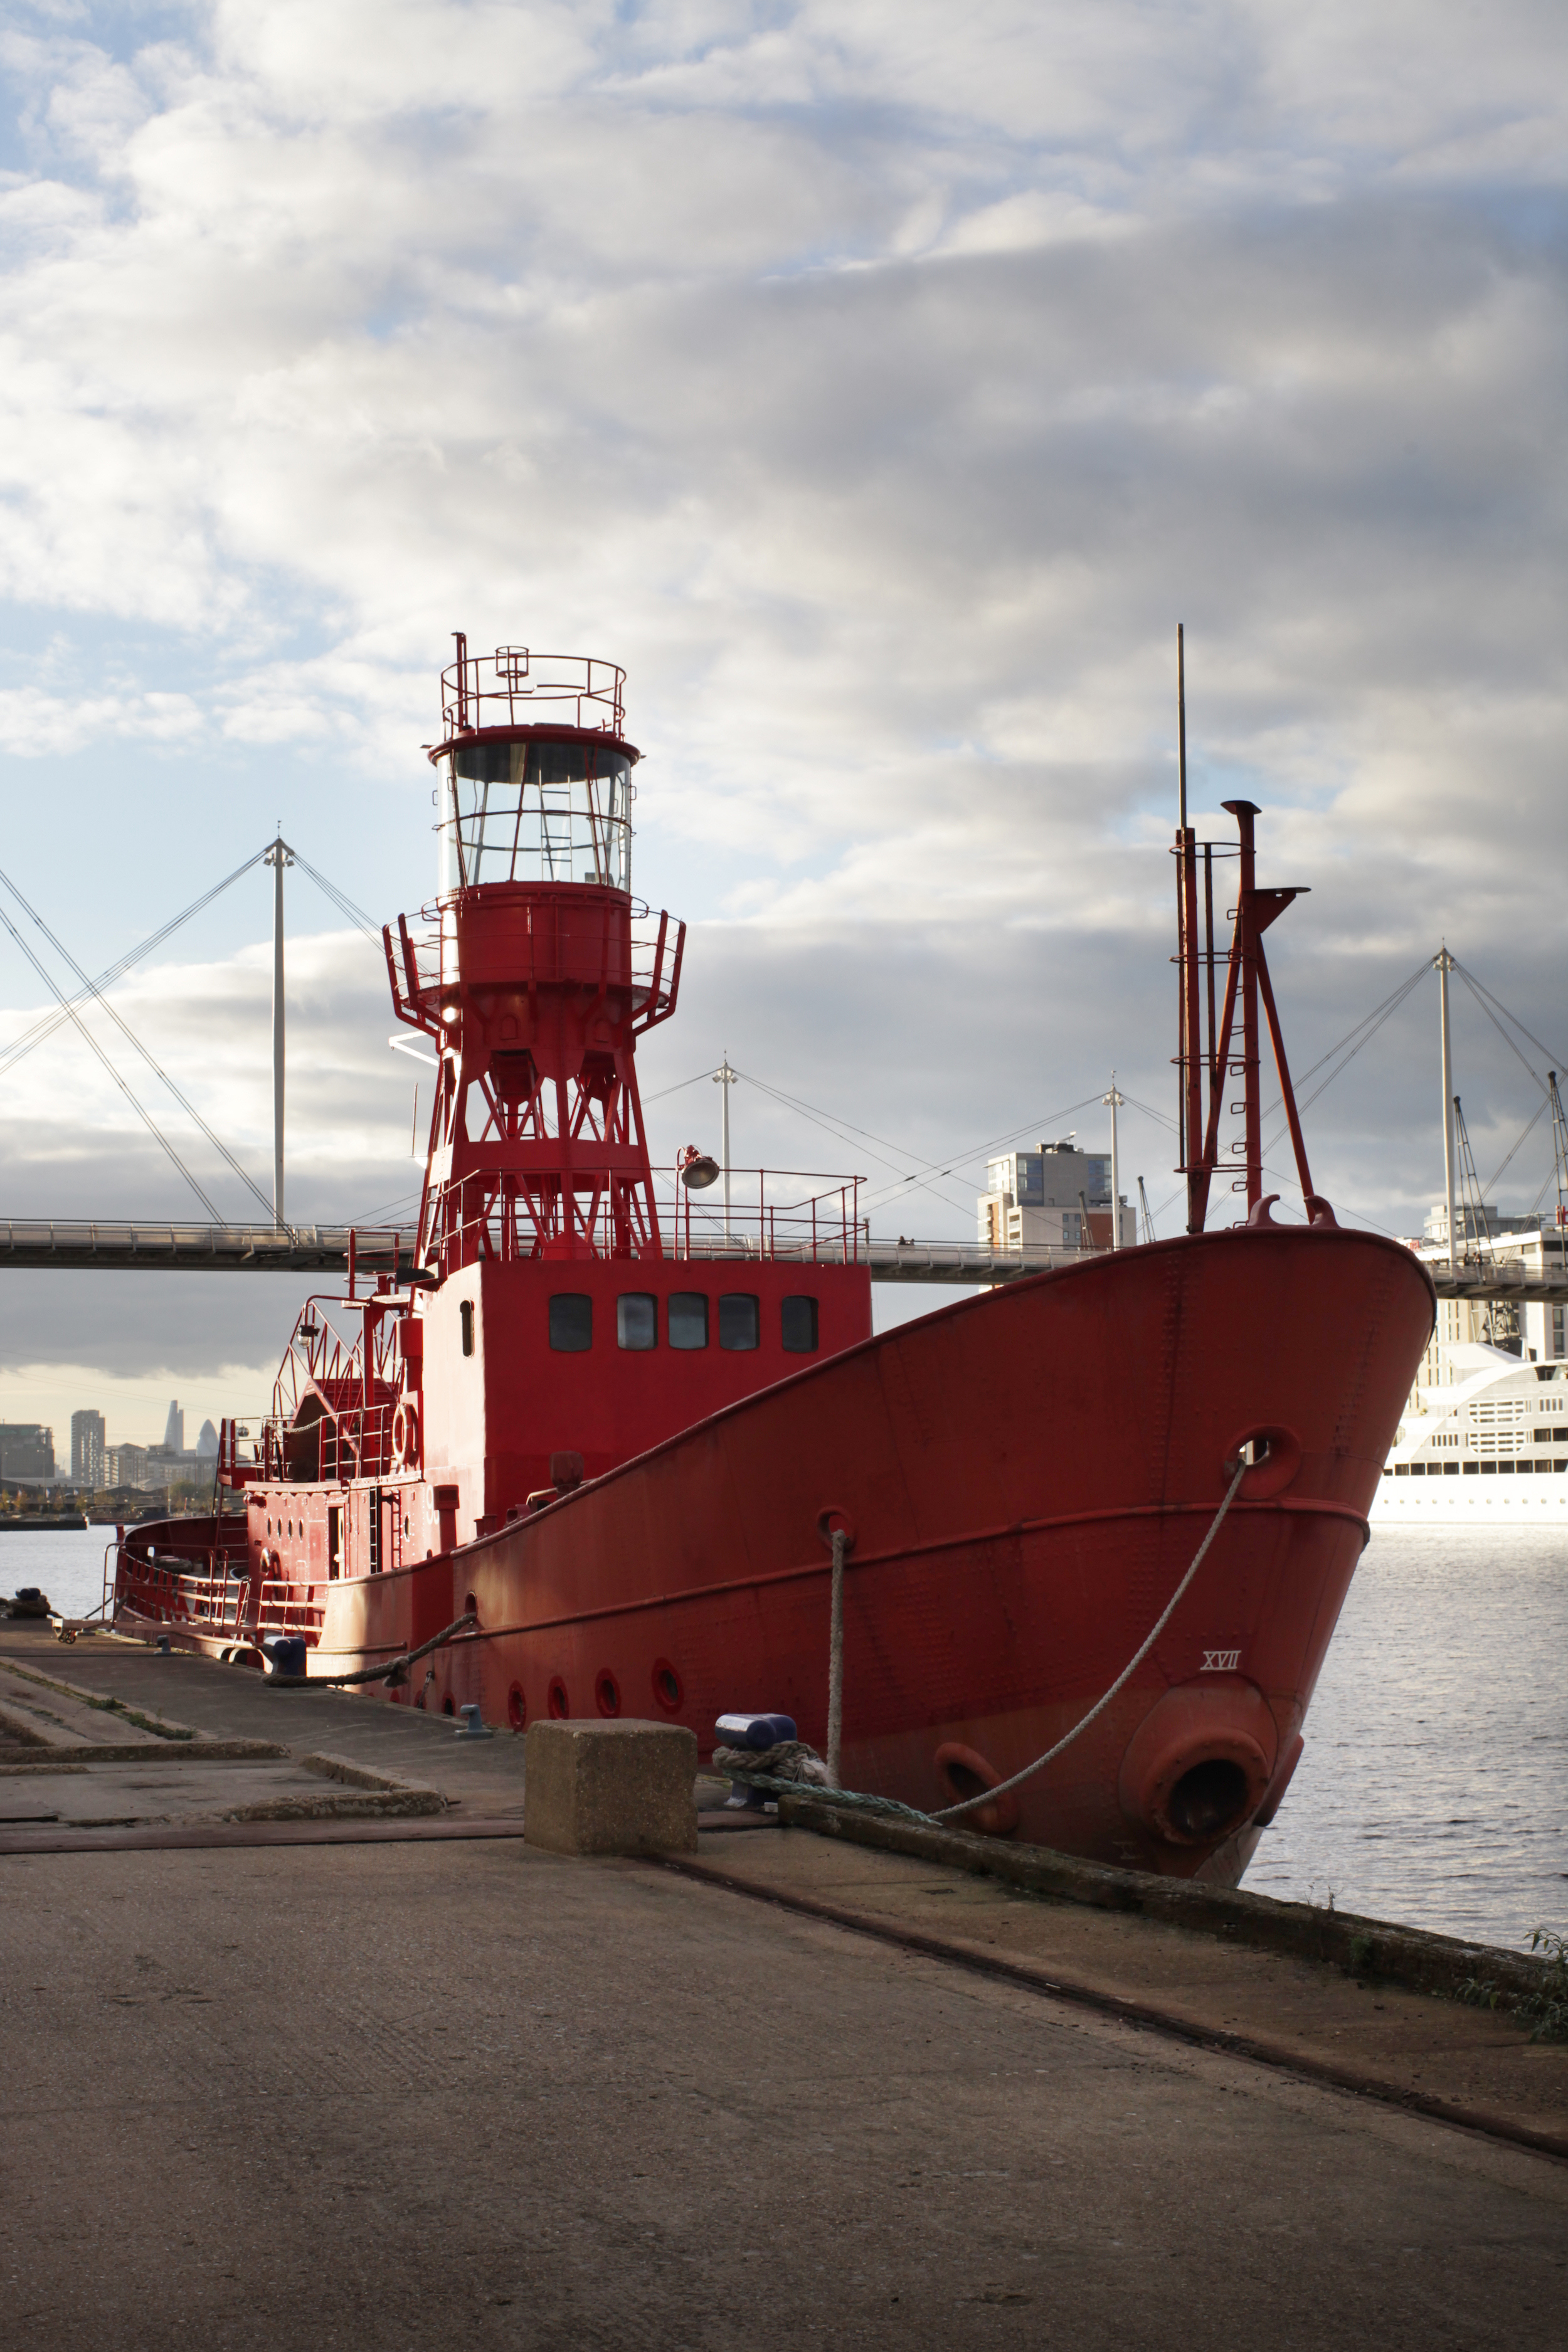 Red boat with lighthouse tower moored on the edge of the dock